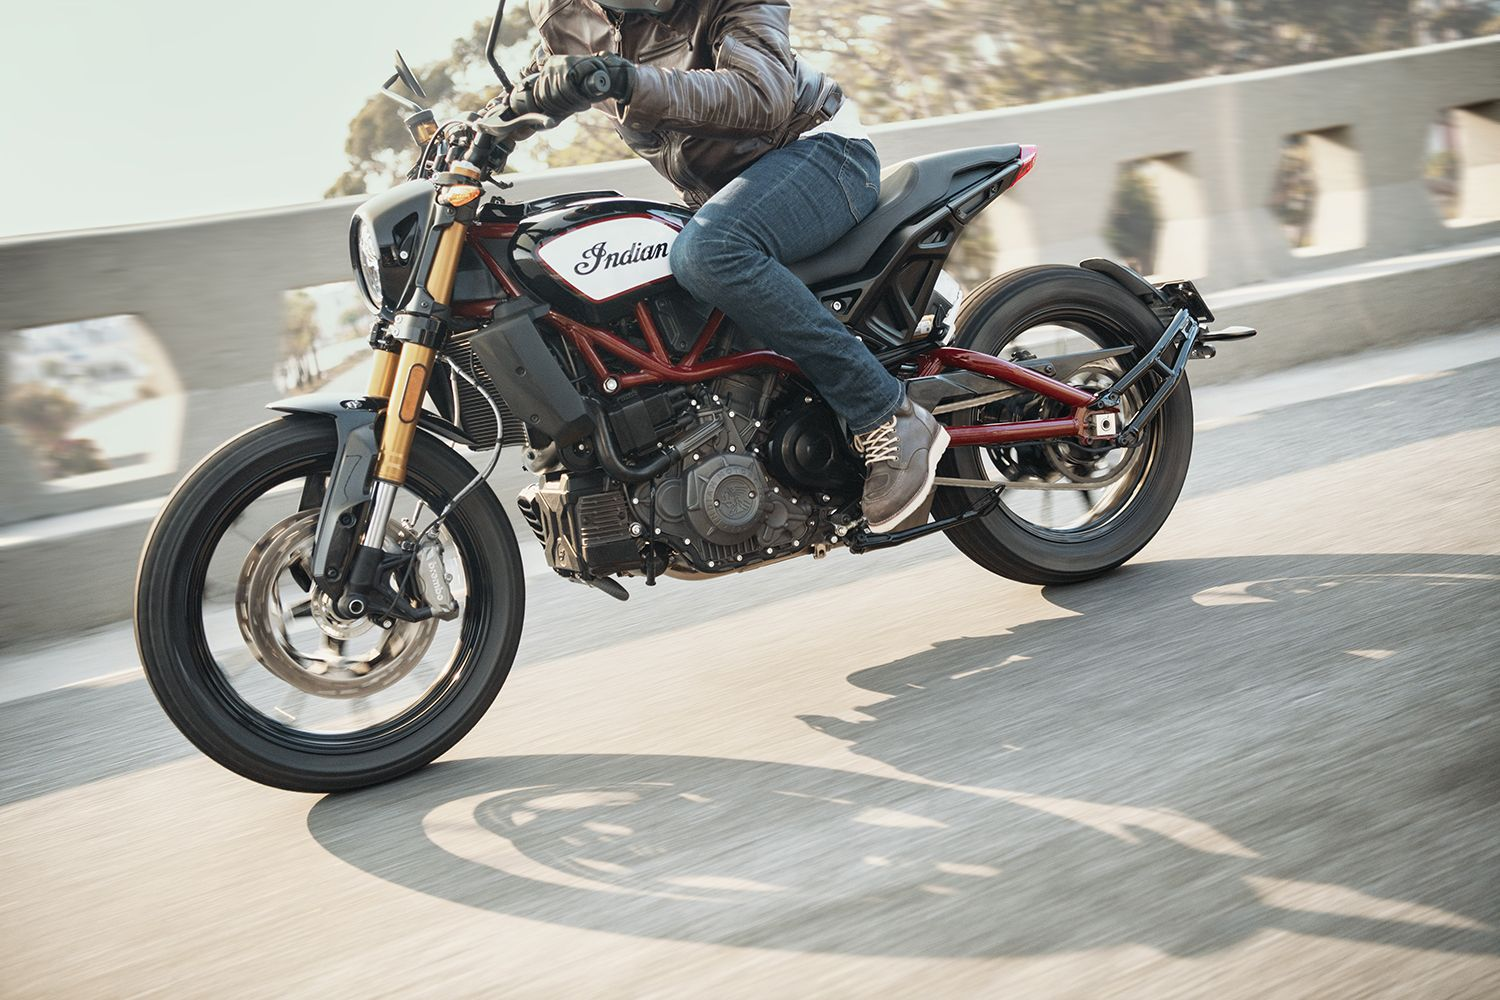 Indian's New Motorcycle Is a Flat-Track Racer Built for the Road